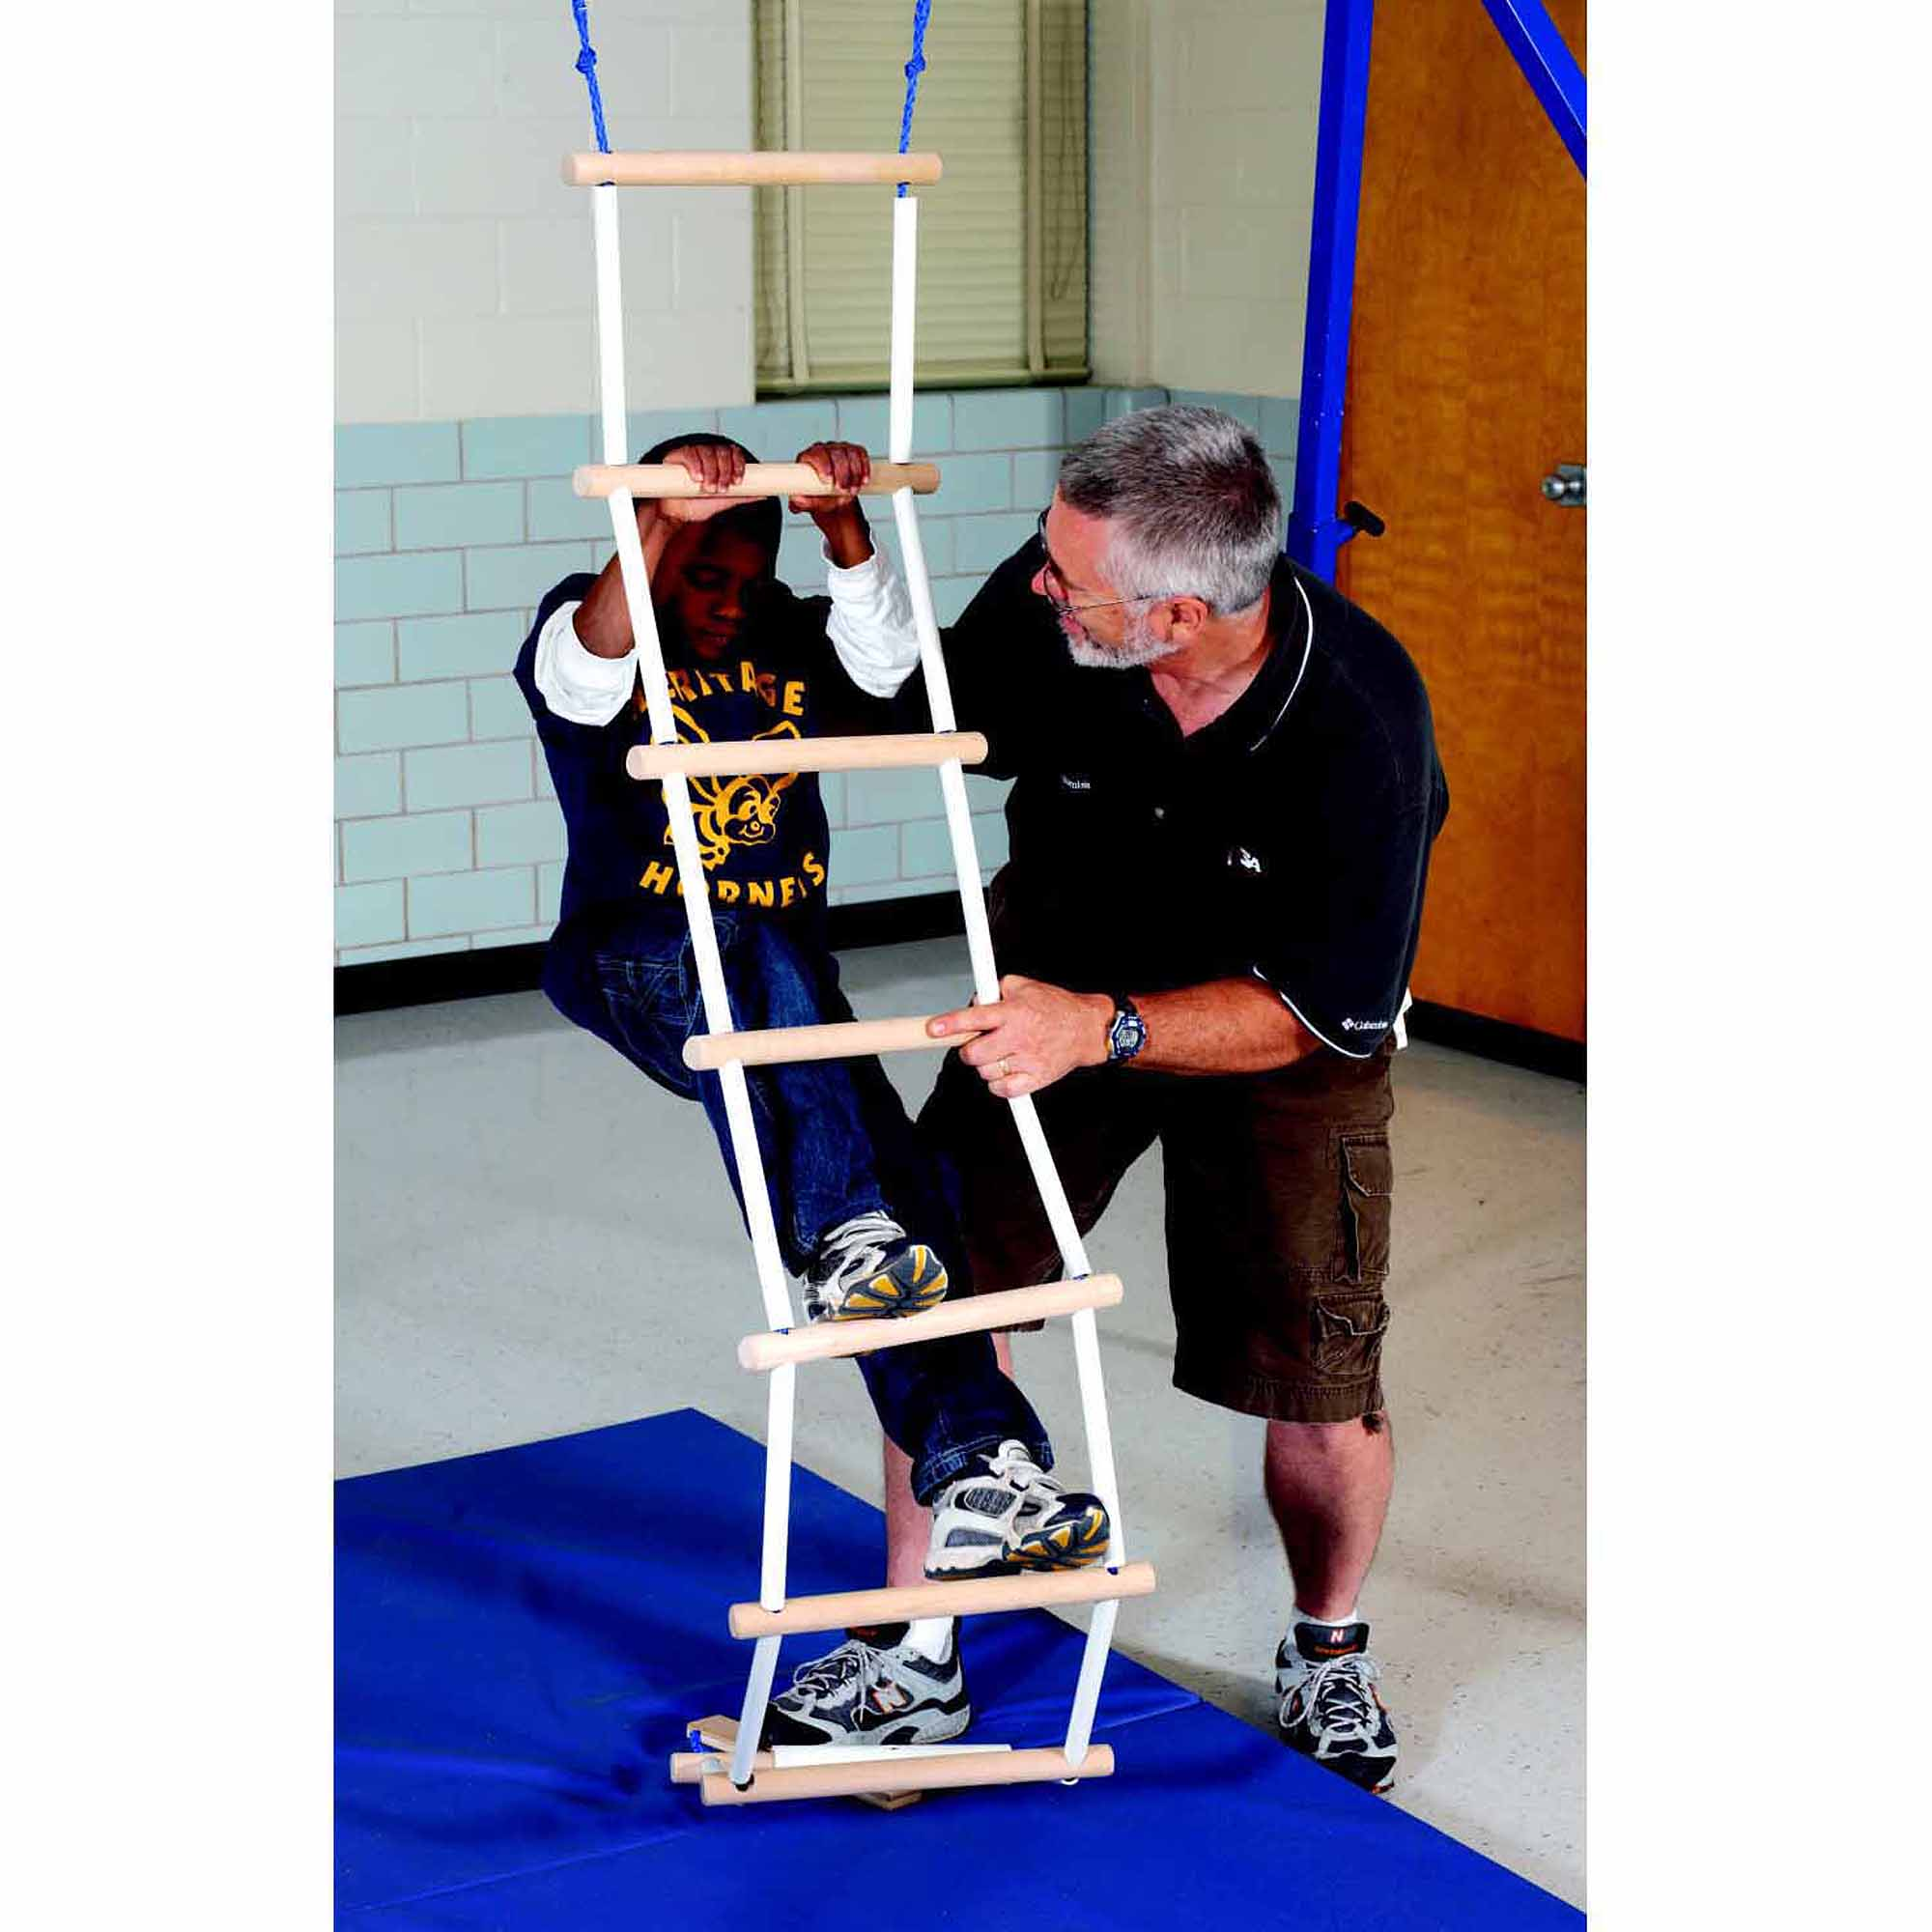 Abilitations Integrations Smooth-Grip Ladder Vestibular Orientation